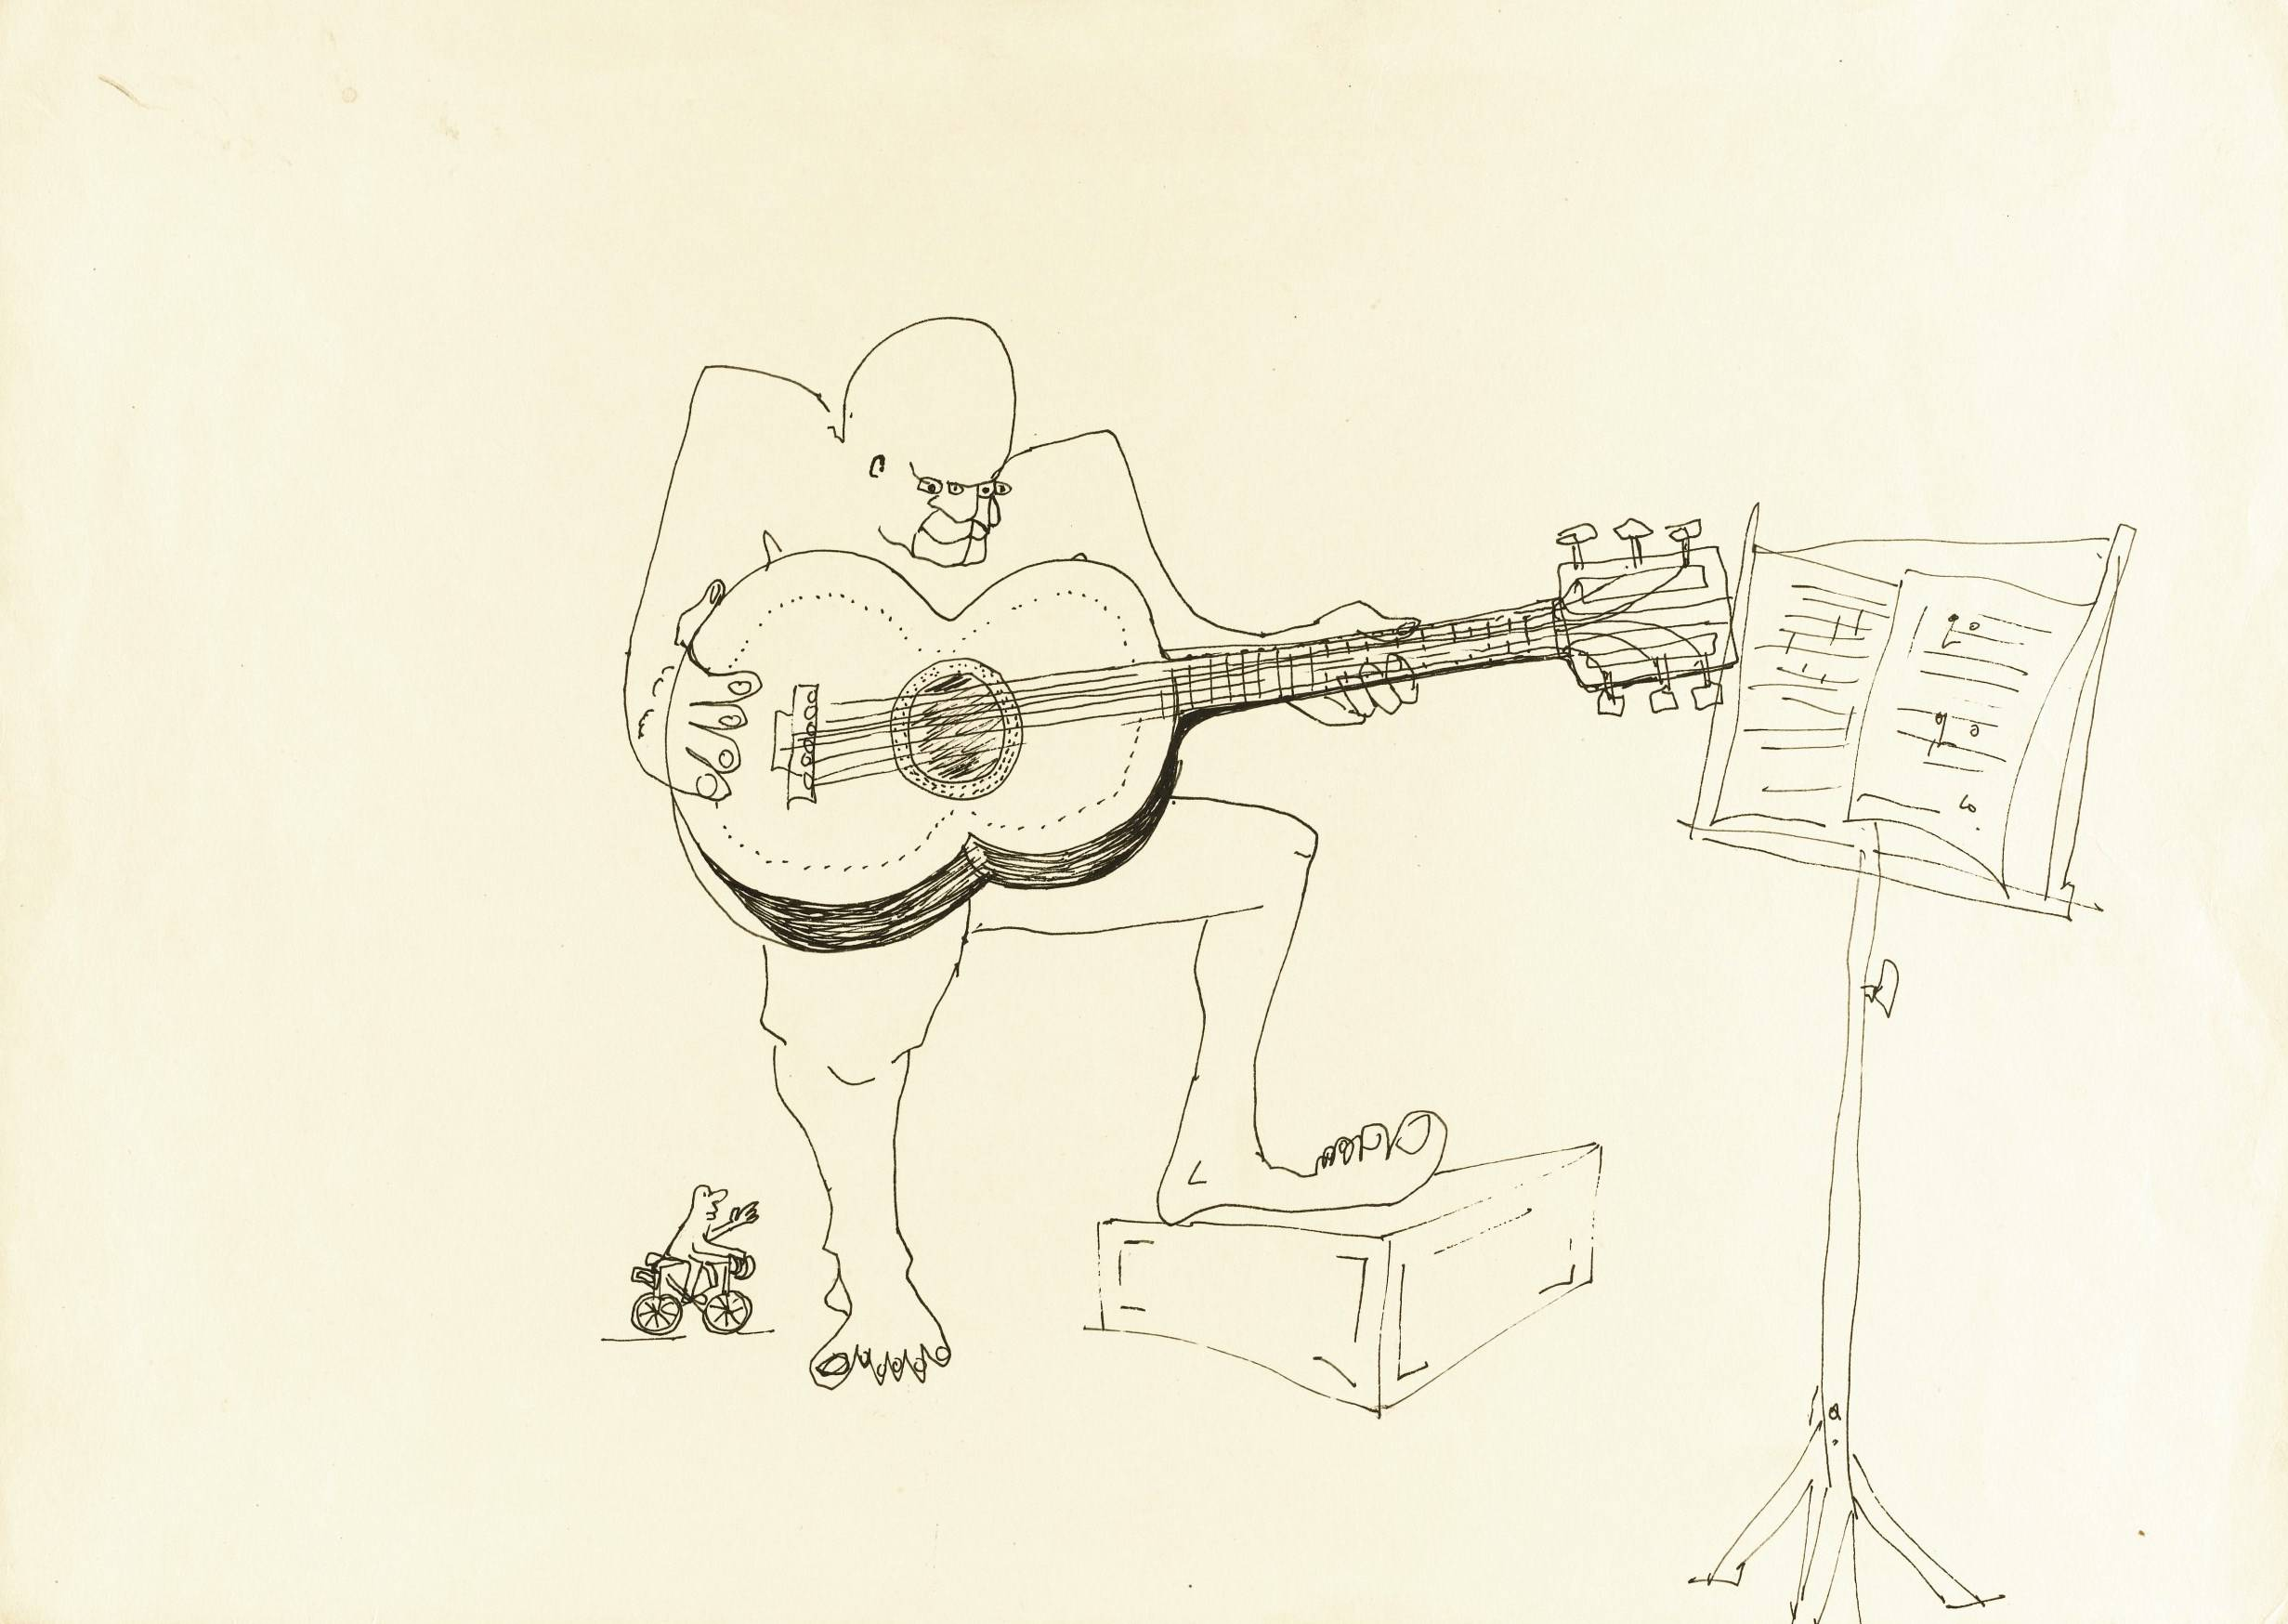 An untitled ink drawing by John Lennon of a guitar player.